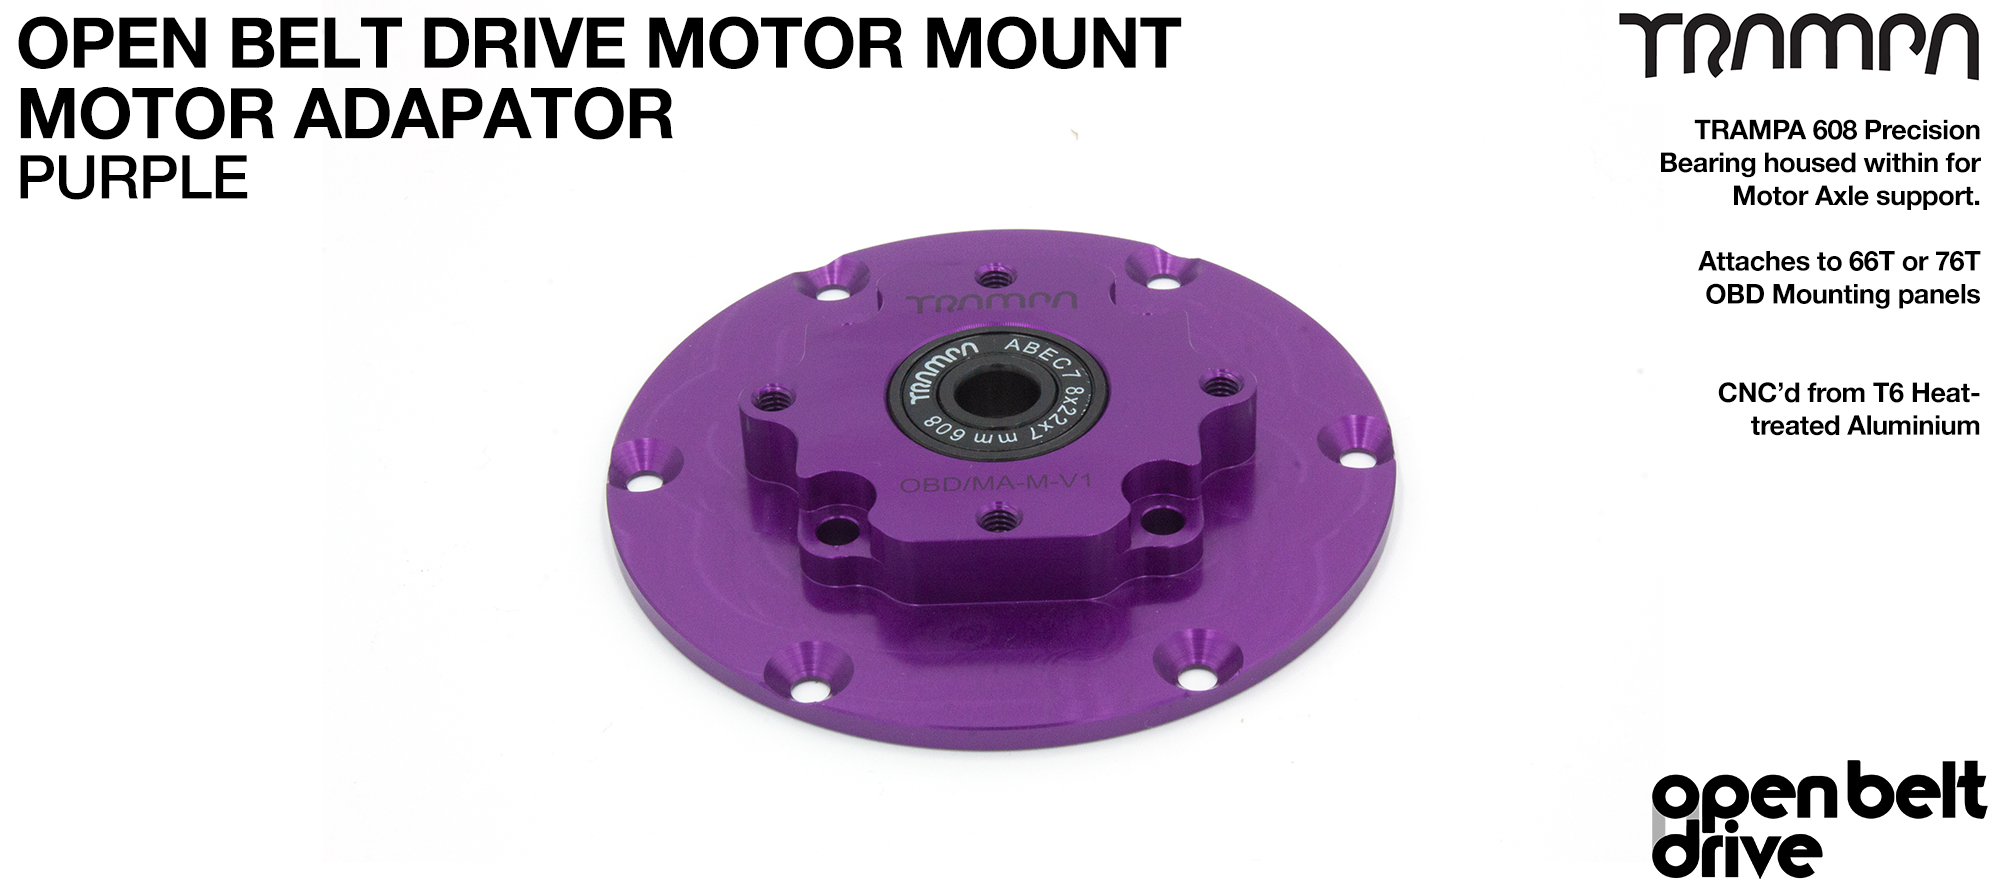 PURPLE OBD Motor Adaptor with Housed Bearing